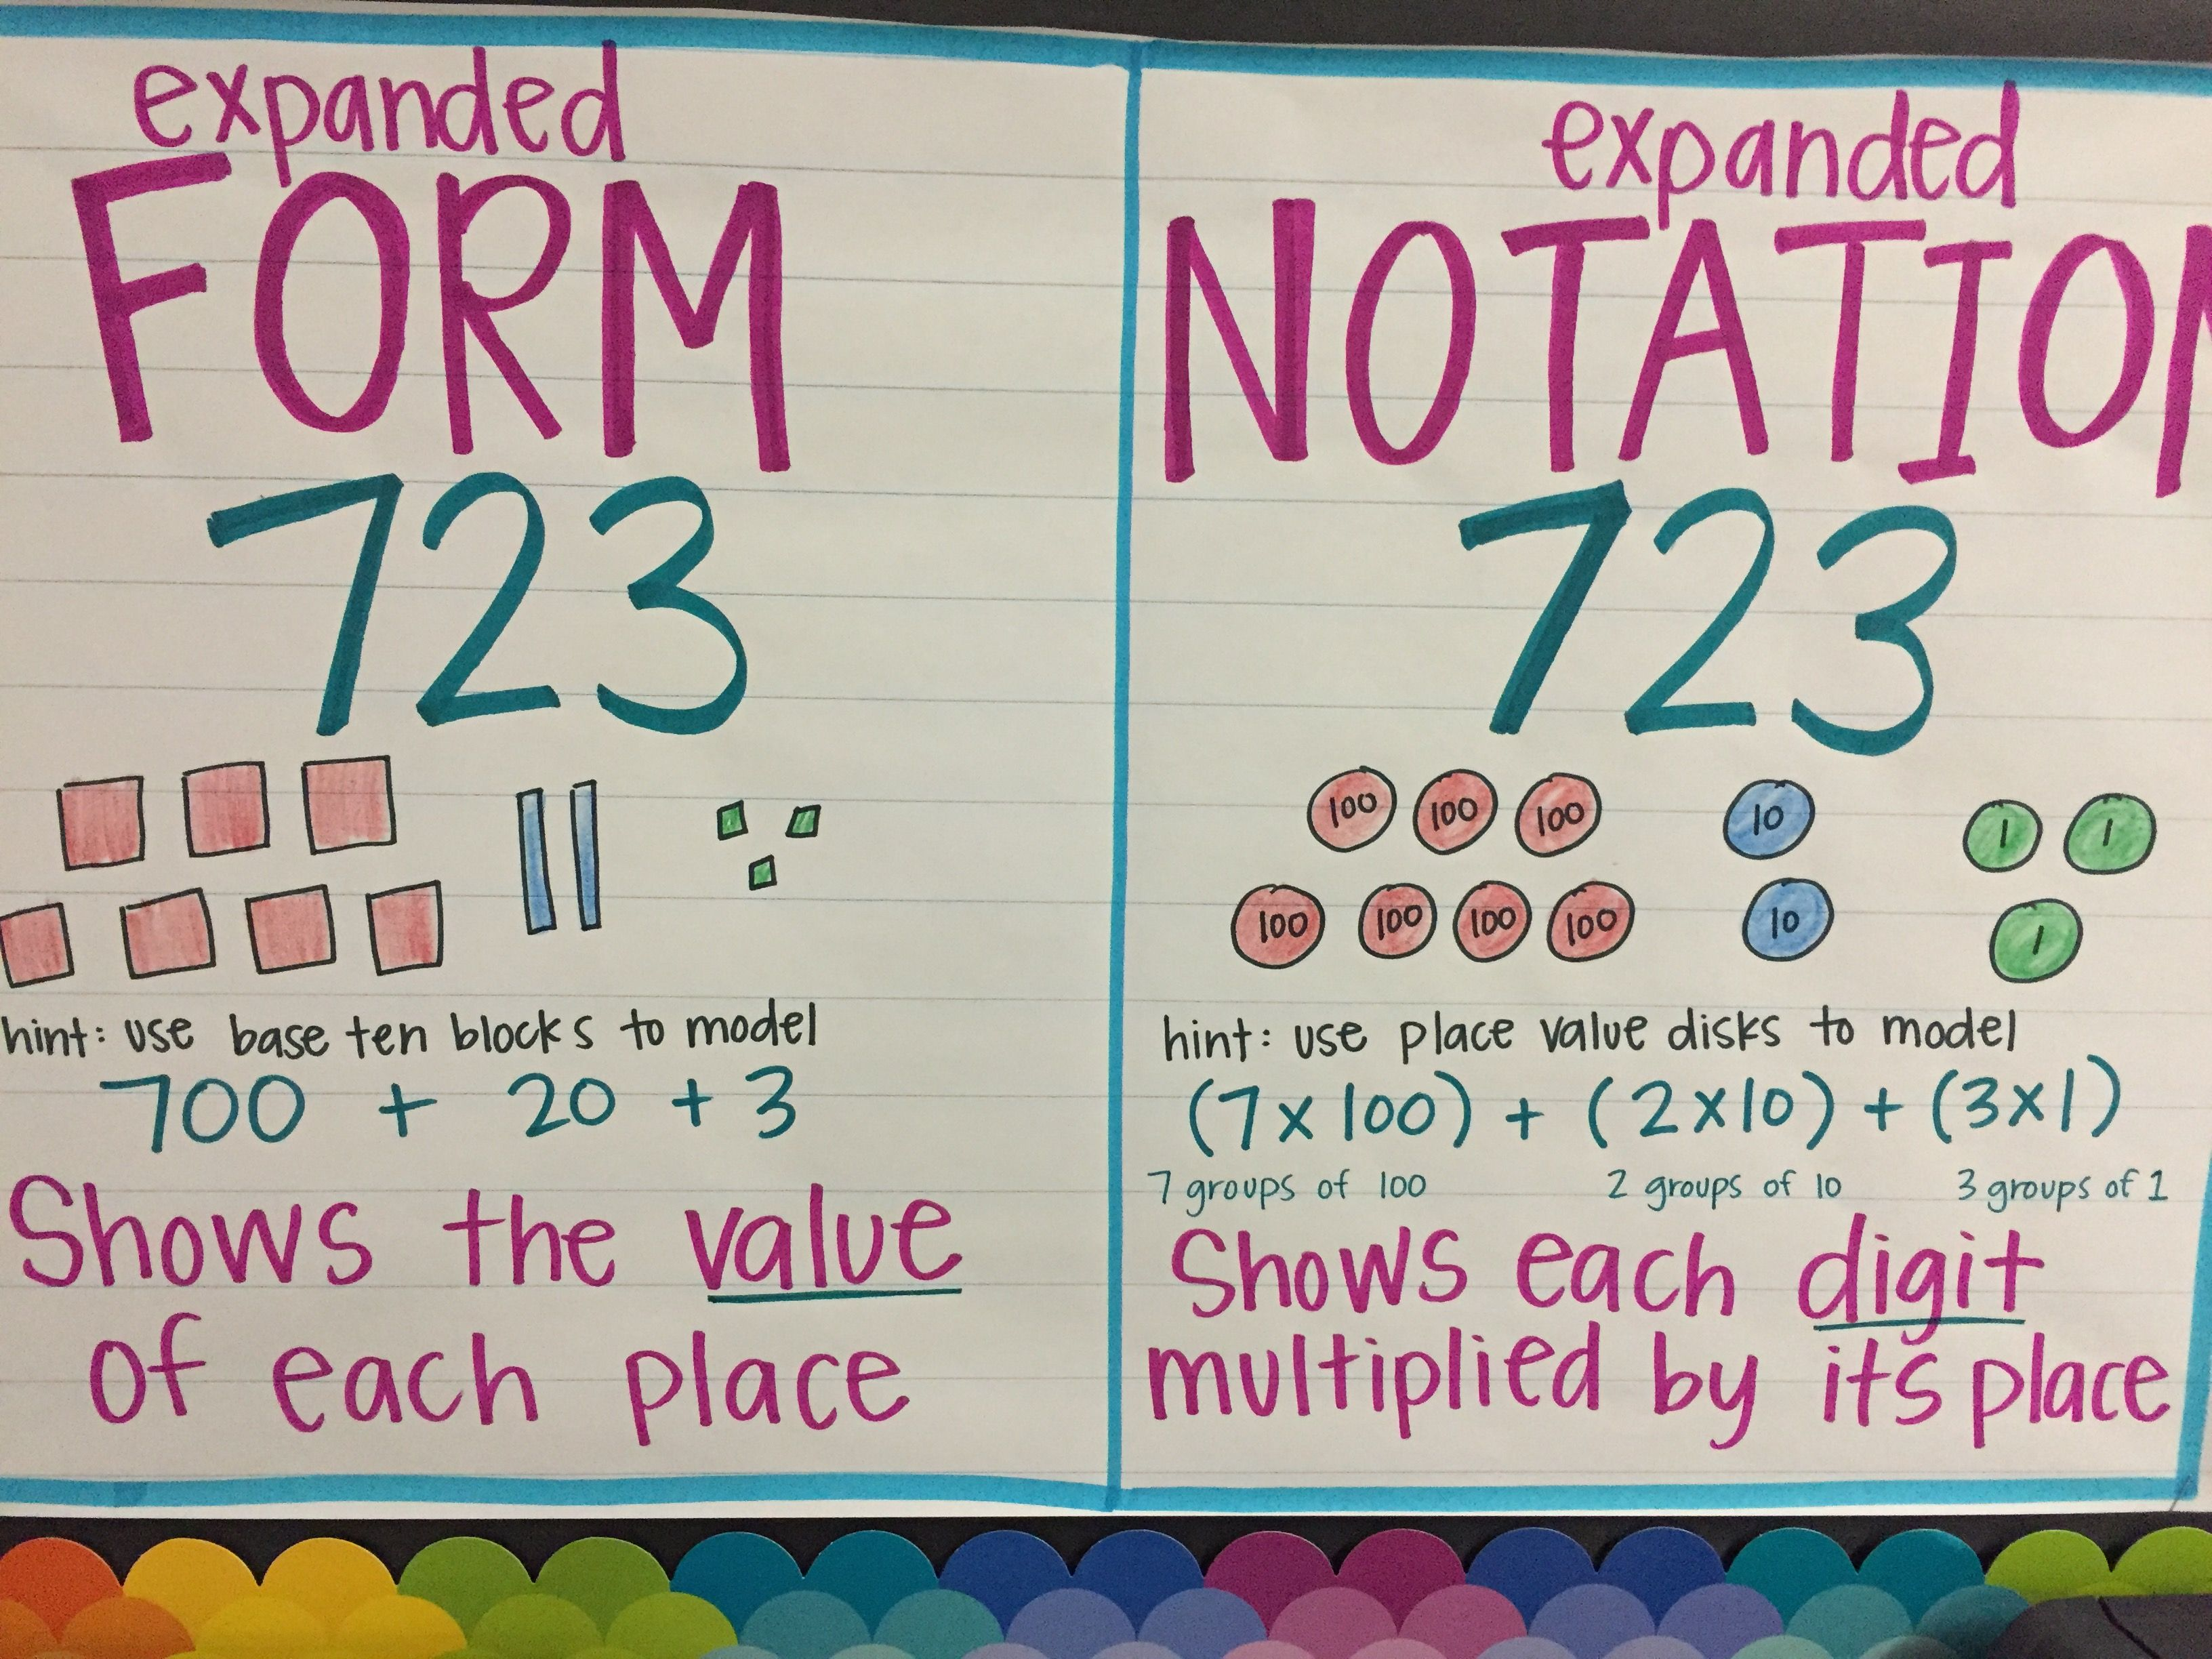 expanded form vs expanded notation anchor chart  Expanded form/Expanded notation | Expanded notation, Guided ...